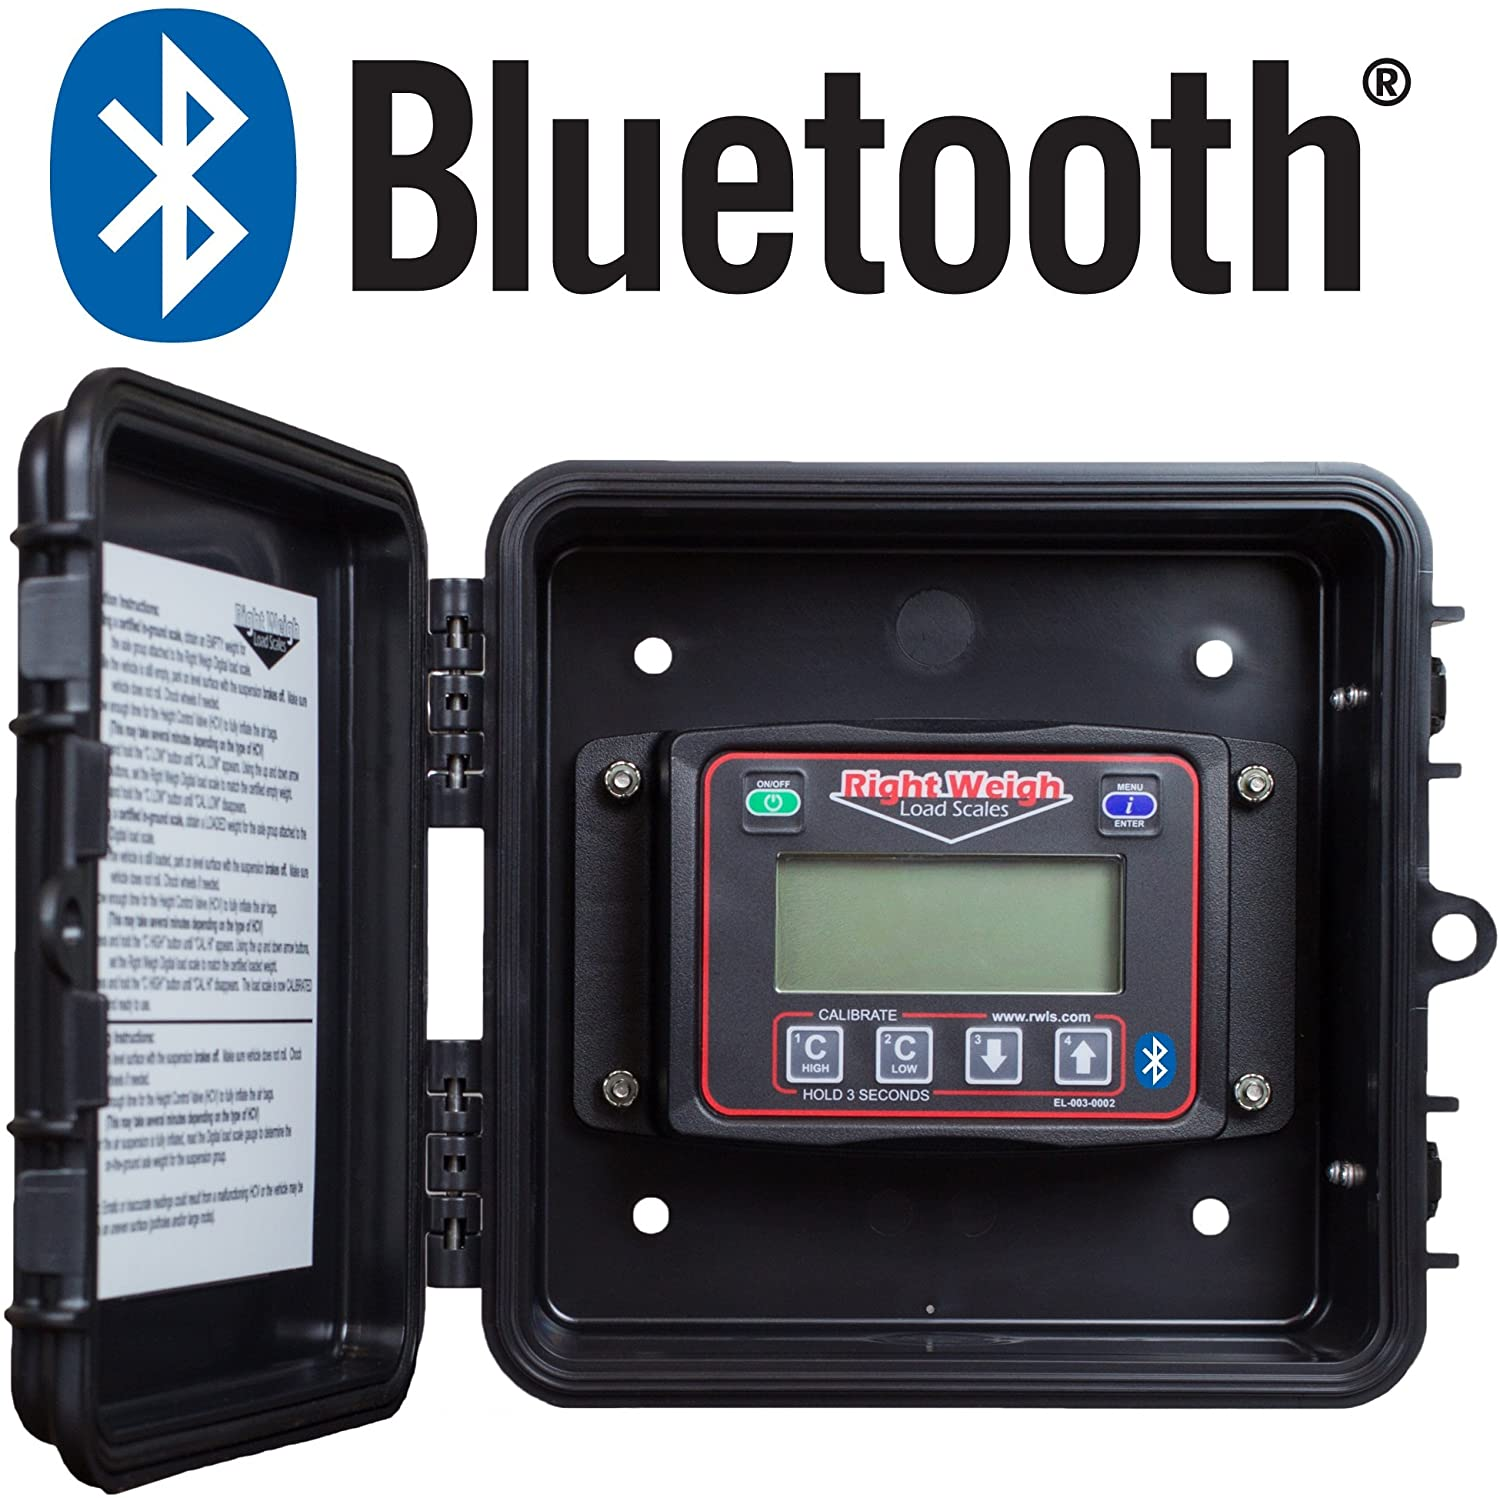 Bluetooth-Enabled Right Weigh 201-EBT-02B Exterior Digital Axle Load Scale - For Two Height Control Valve Air Suspensions or Dedicated Tractor/Trailer Sets